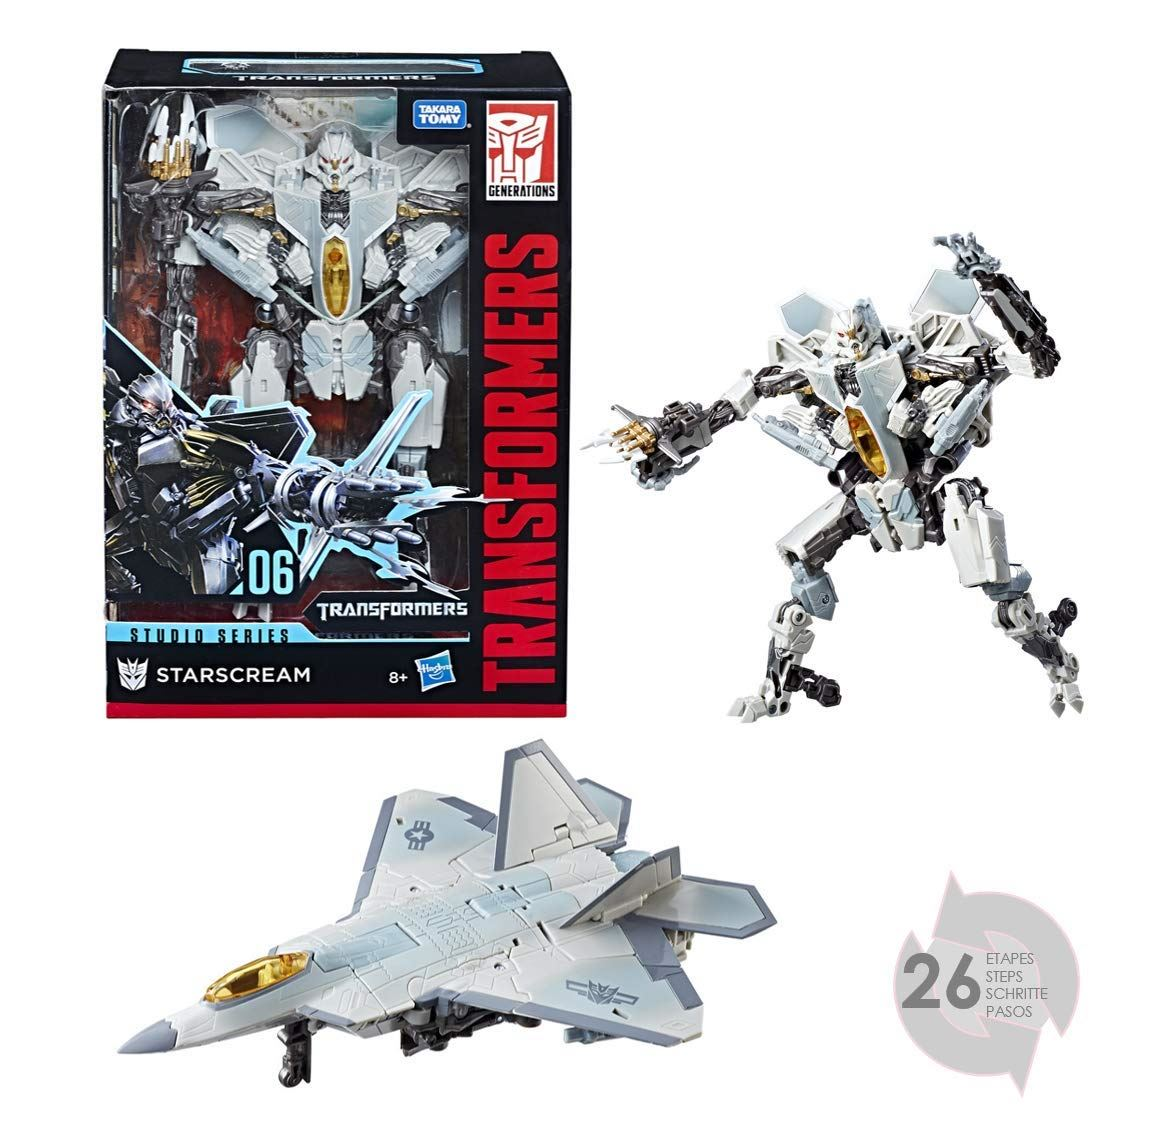 Transformers Voyager Starscream Aircraft Robot Action Figures Kids Toys Gifts